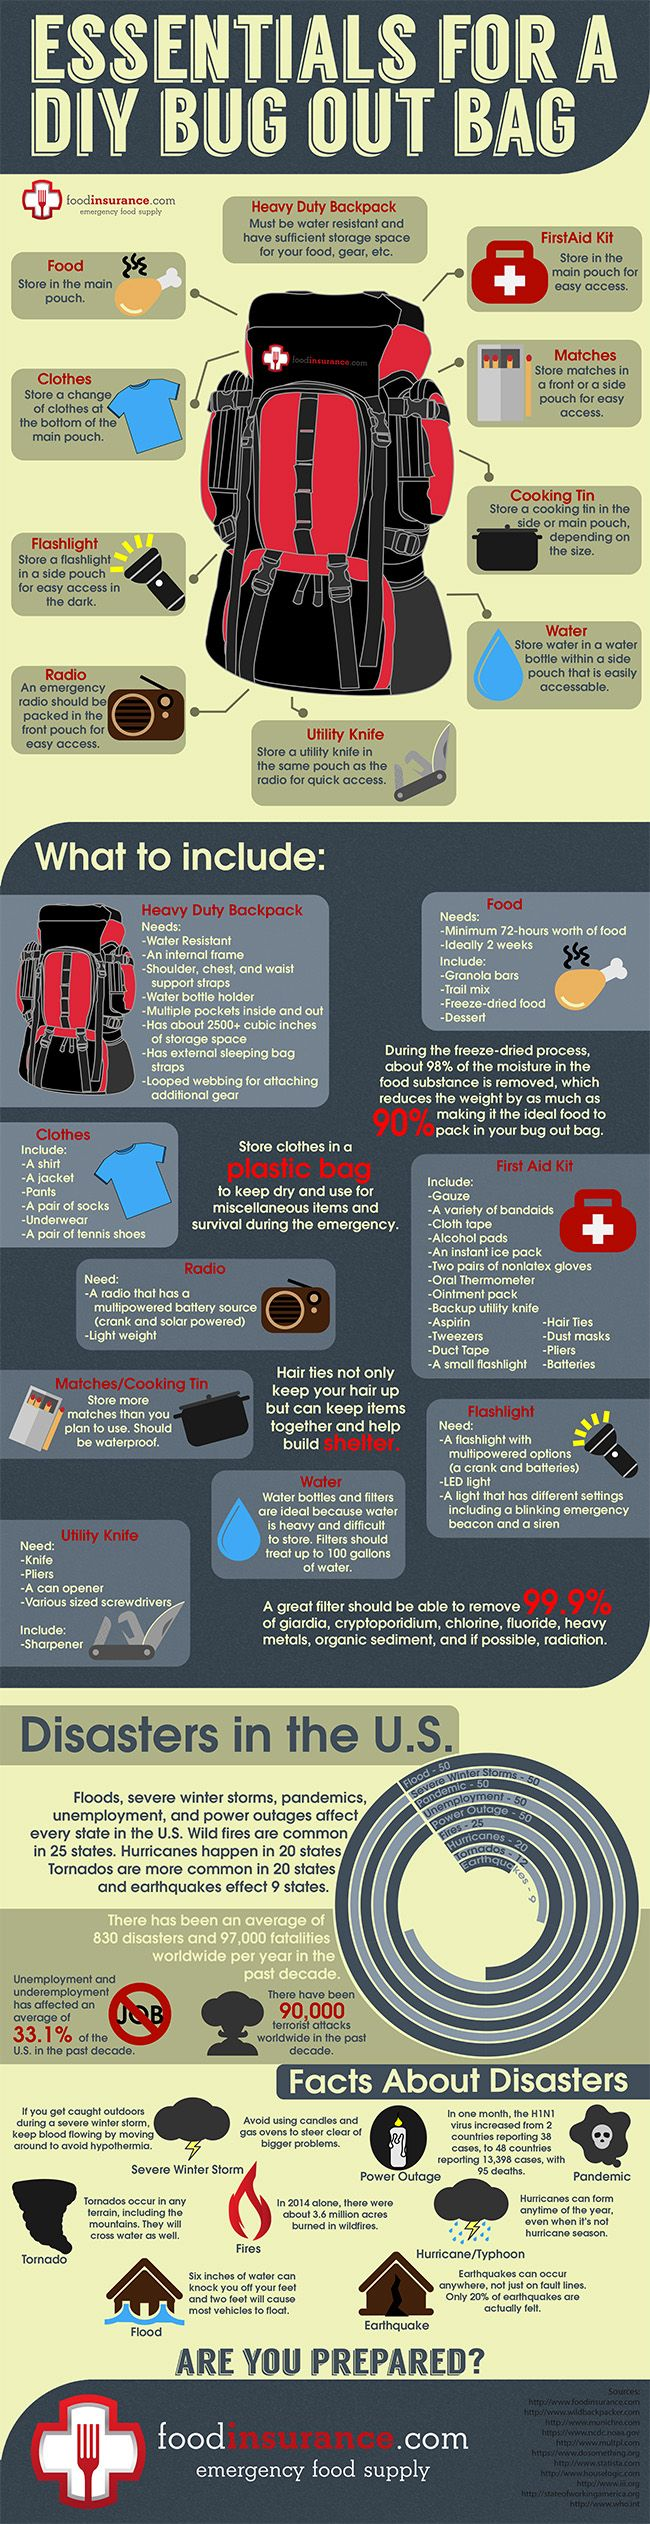 Also add in stitch wound stapler in first aid kit if necessary DIY Bug Out Bag Infographic | FoodInsurance.com